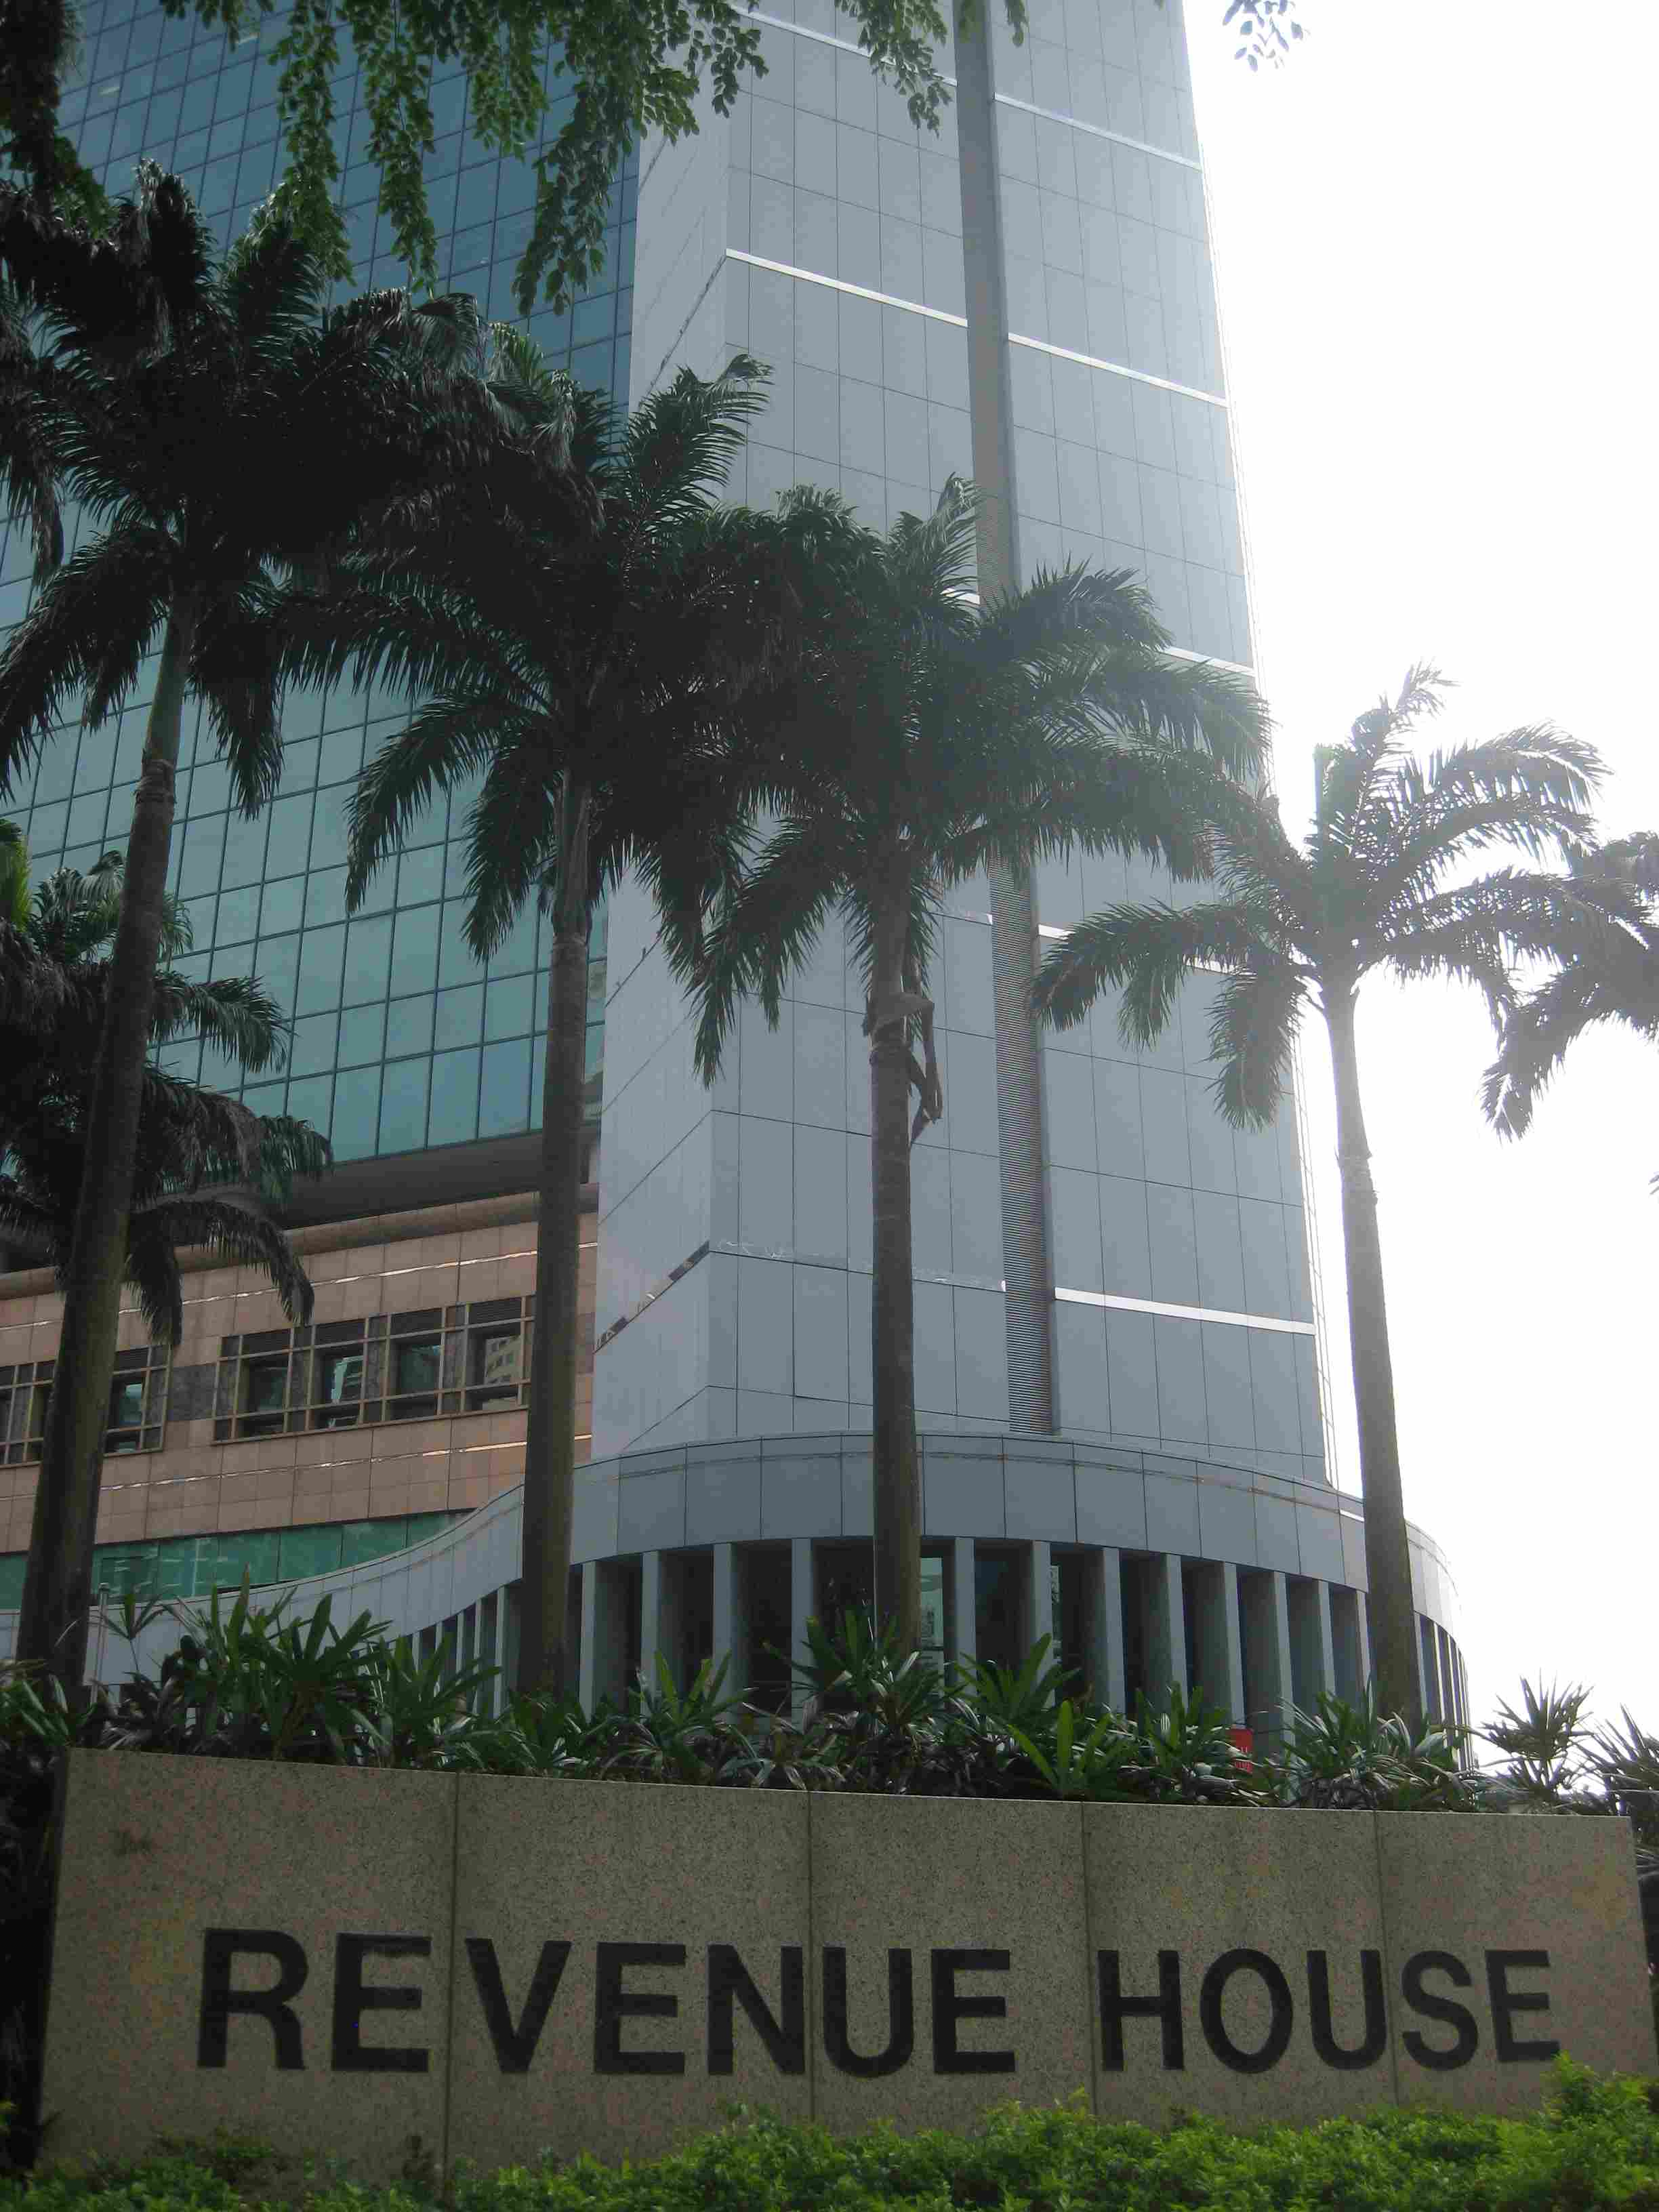 The Revenue House located at Newton Road which houses Singapore's Auditor-General's Office